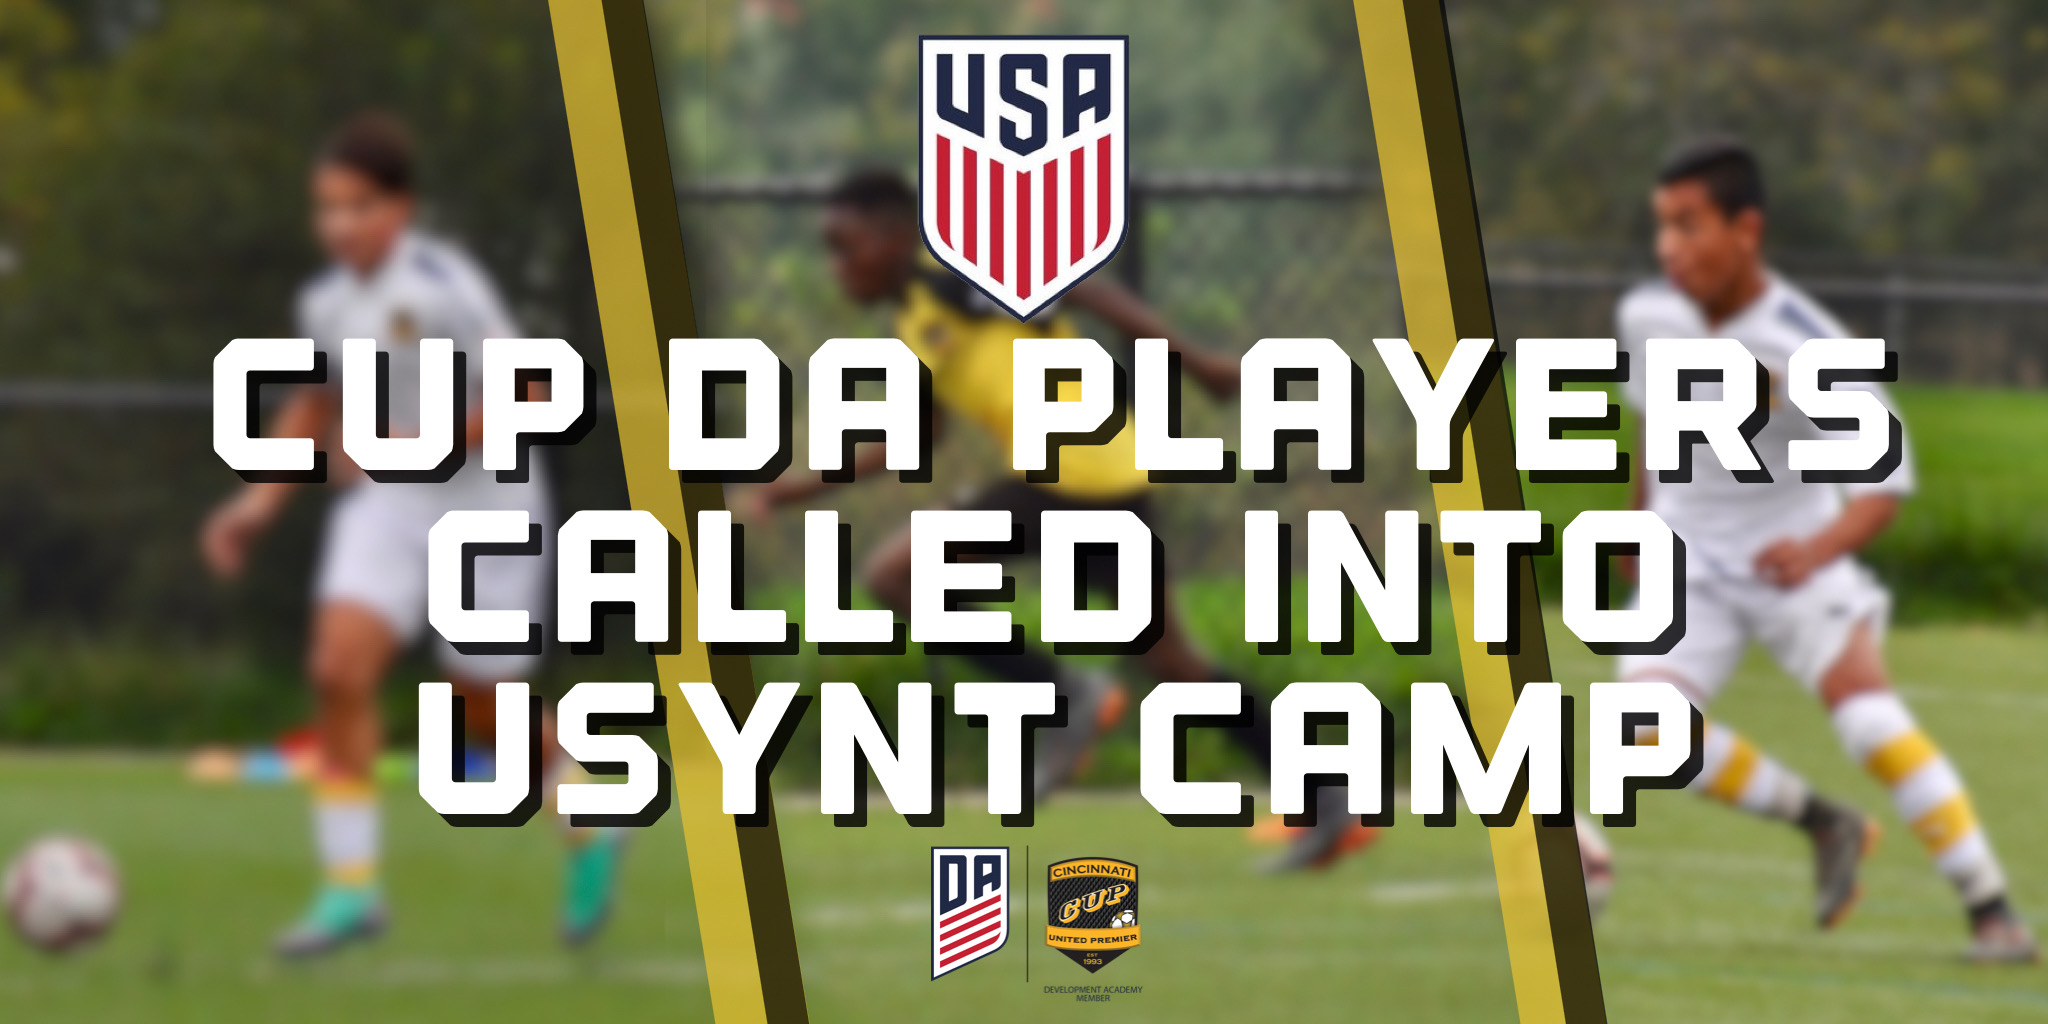 Multiple CUP DA Players Called In For USYNT Camp